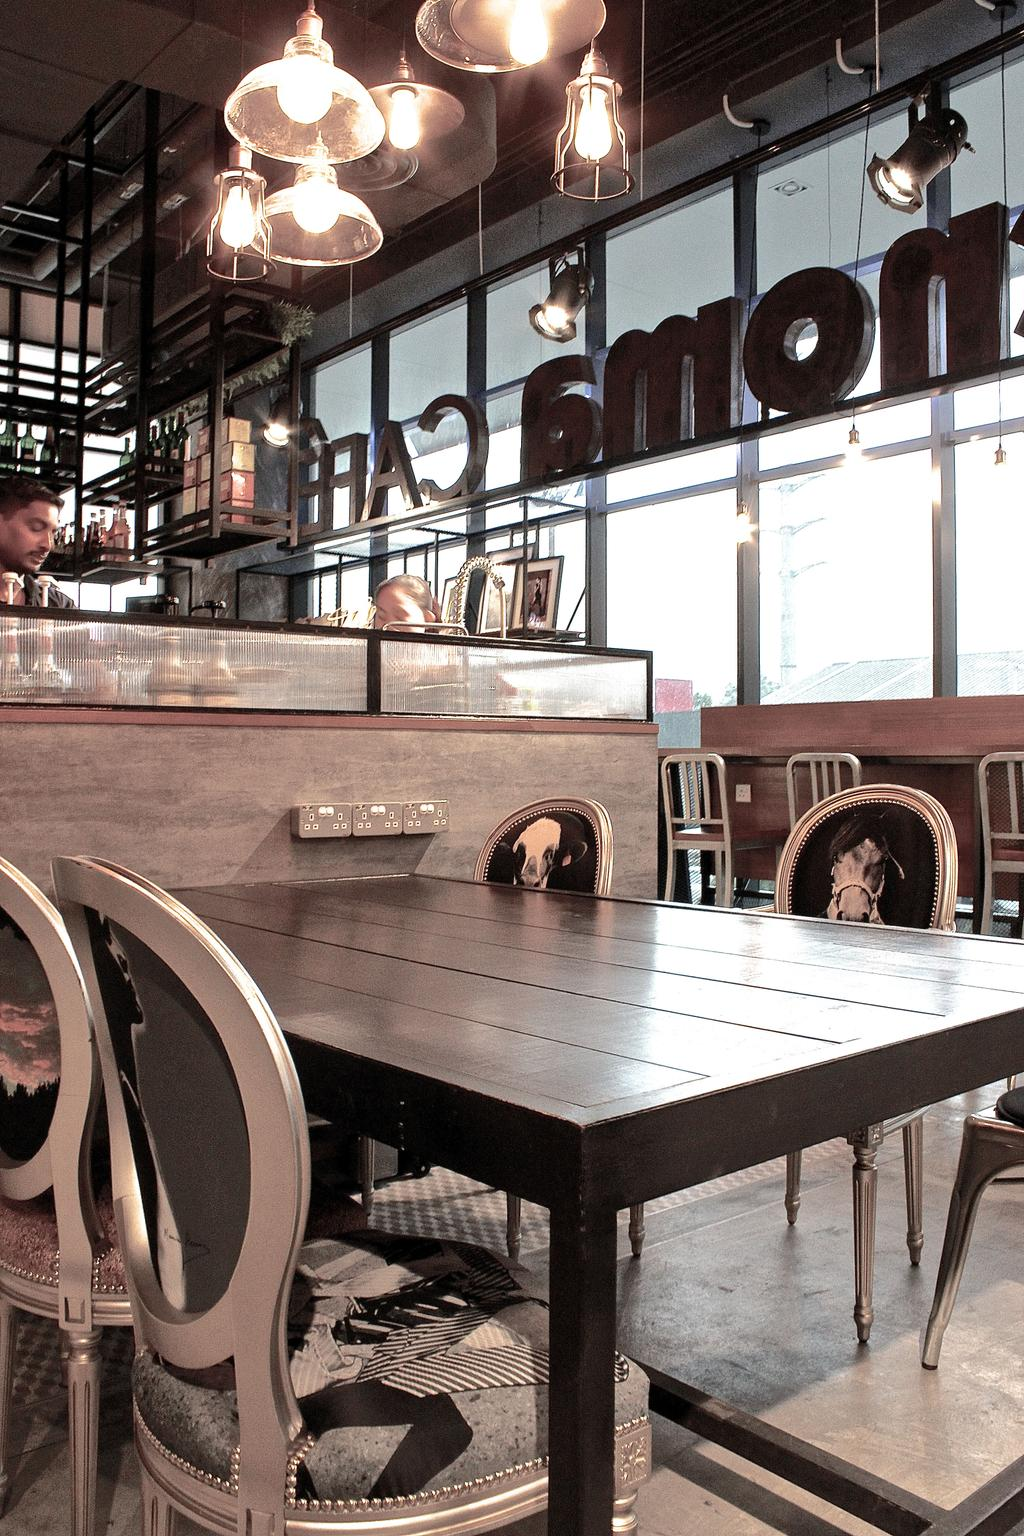 Renoma Cafe @ Ikon Connaught, Commercial, Interior Designer, MLA Design, Industrial, Dining Table, Dining Chairs, Vintage Chairs, Countertop, Hanging Lamps, Pendant Lamps, Track Lights, Dark Wood, Cafe, Bartender, Human, Person, Worker, People